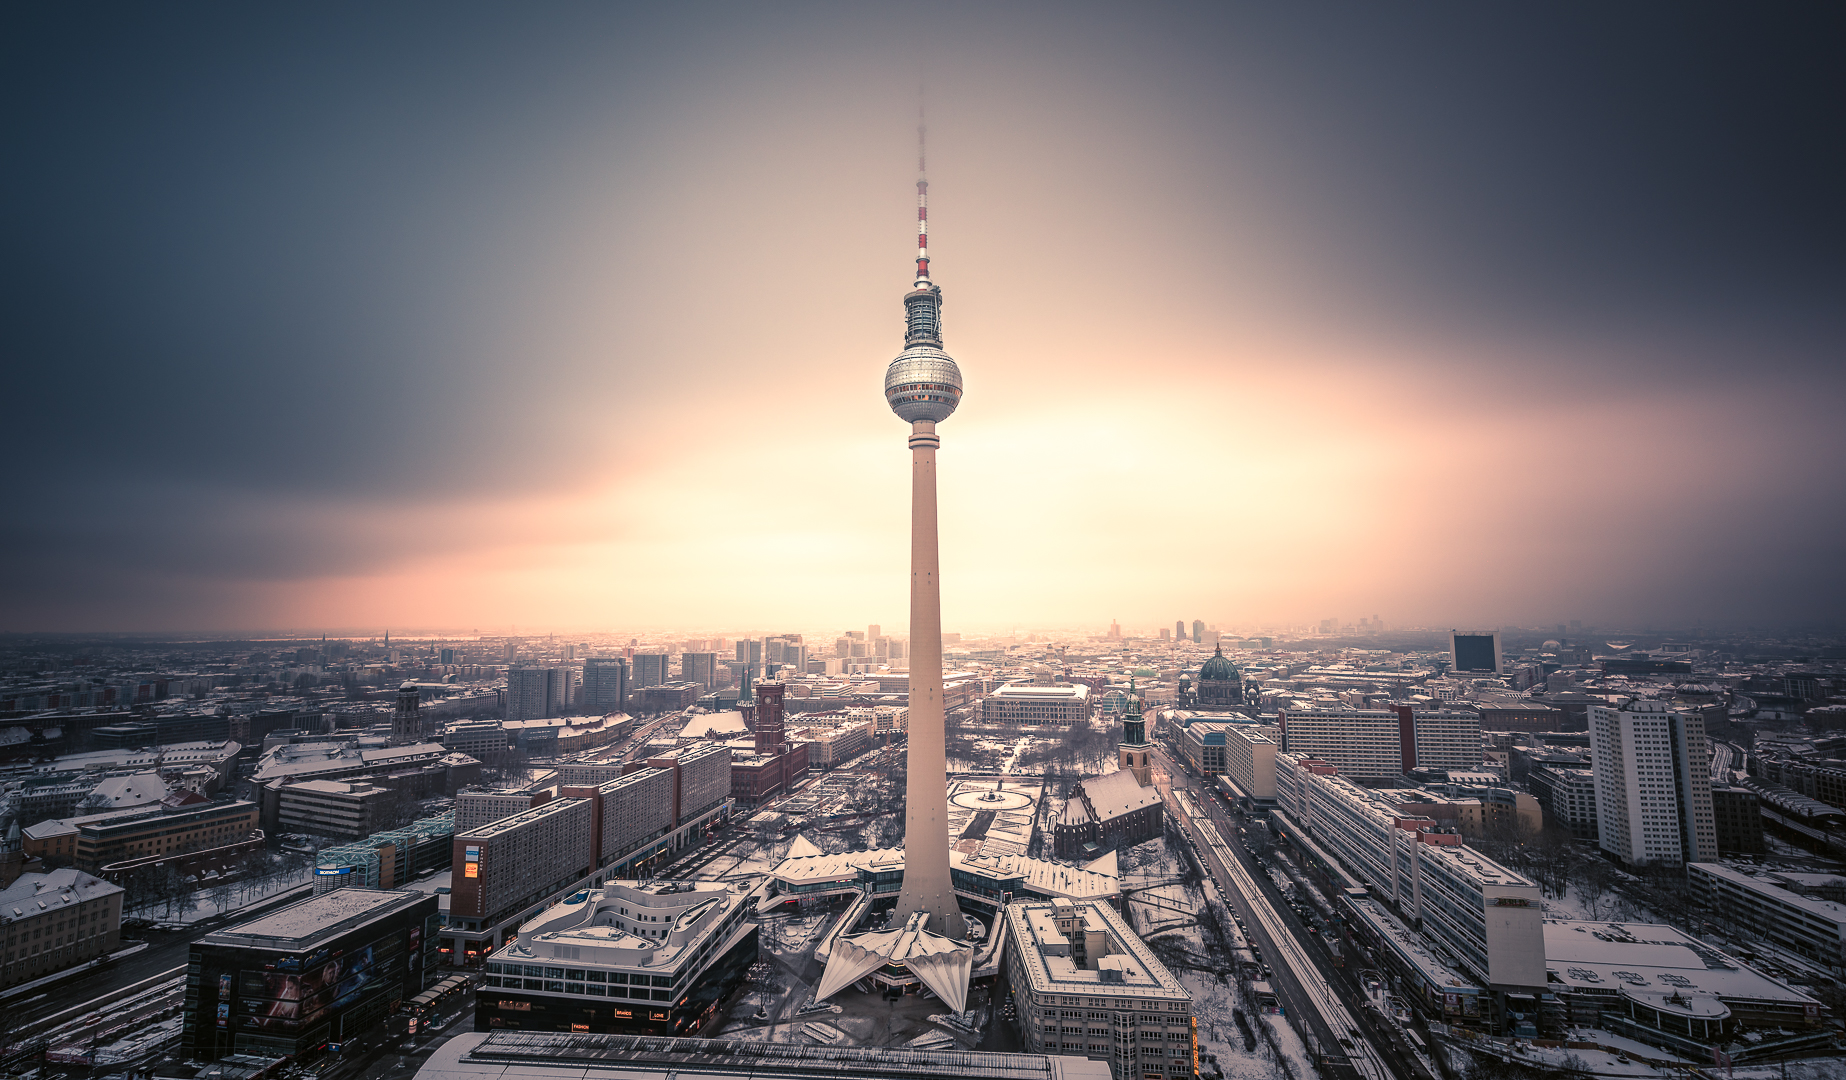 Berlin, TV Tower, Fernsehturm, Sunset, Sonnenuntergang, Blue Hour, Blaue Stunde, Lights, Citylights, Skyline